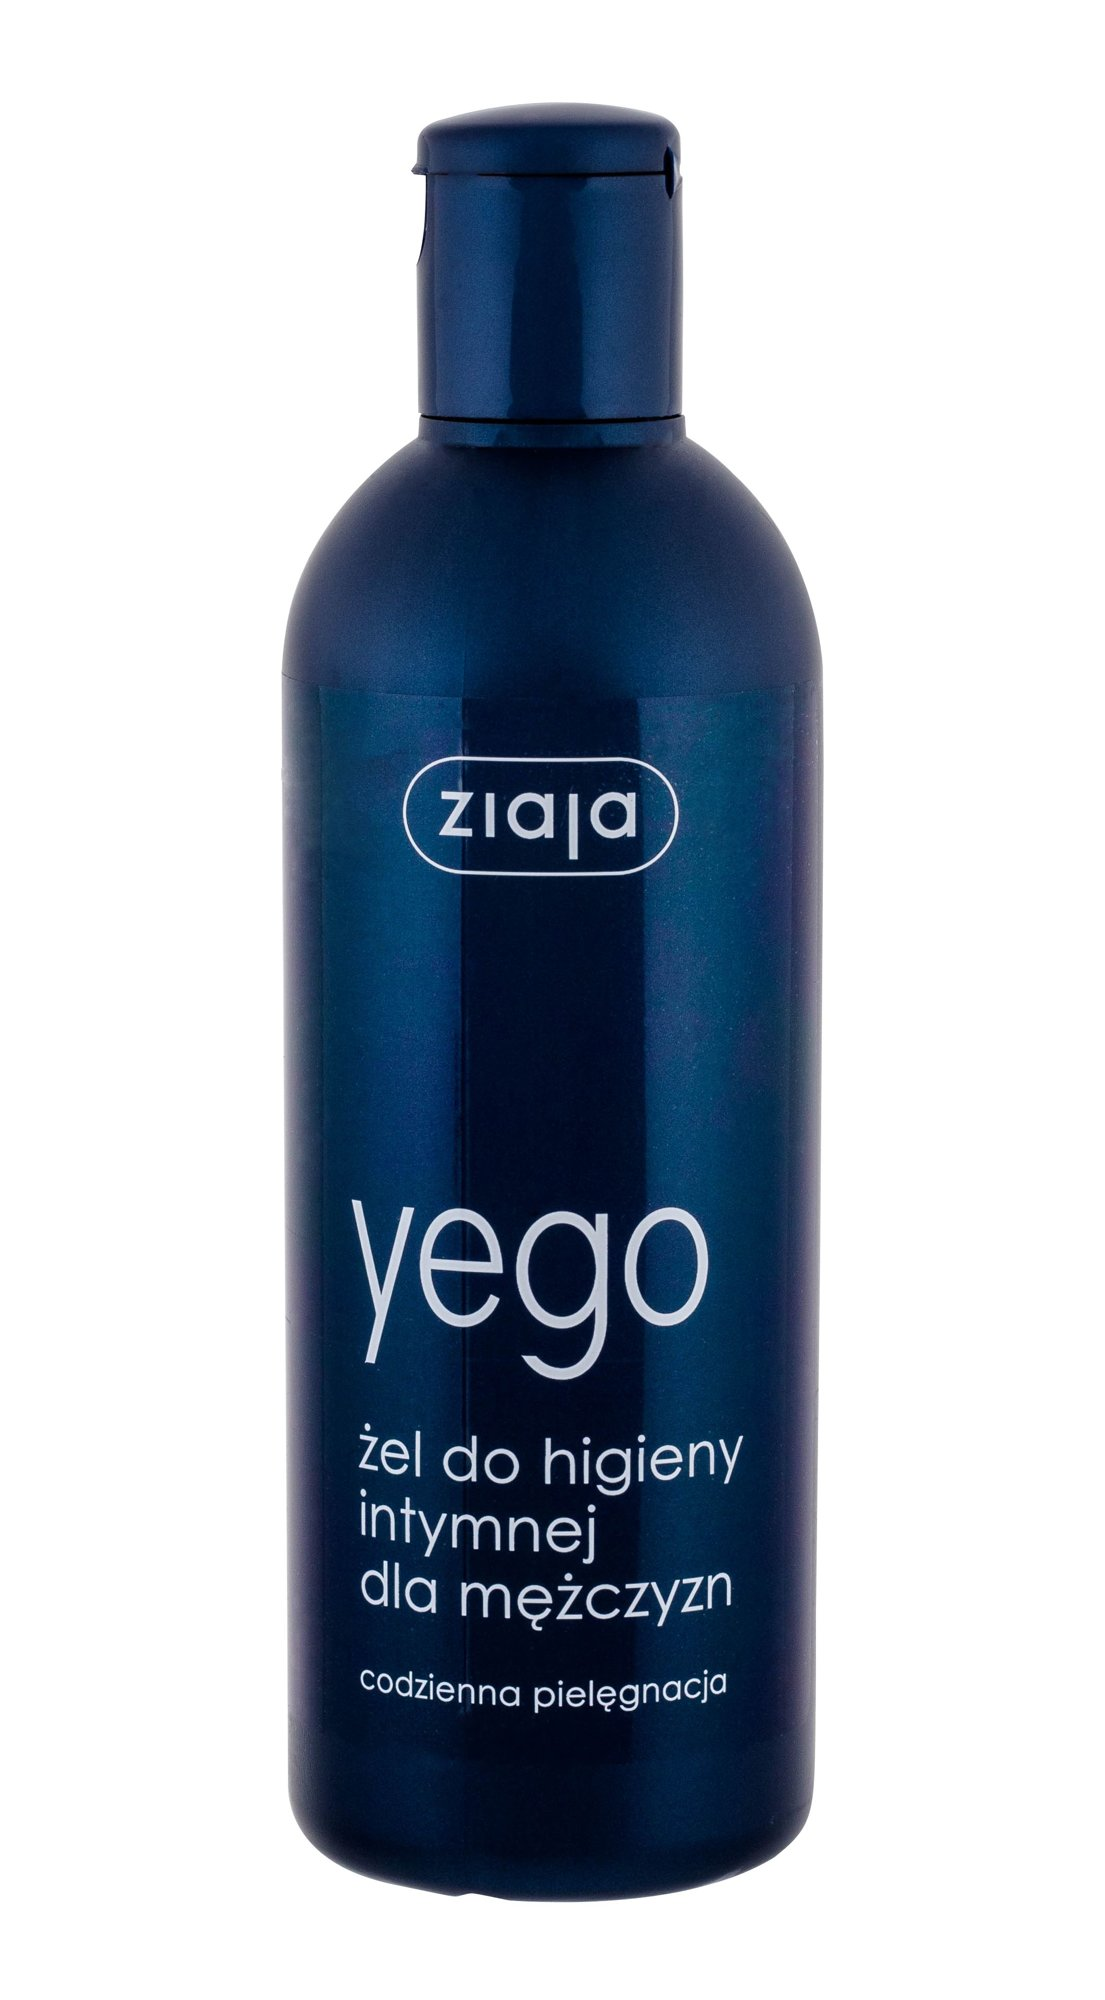 Ziaja Men Intimate Cosmetics 300ml